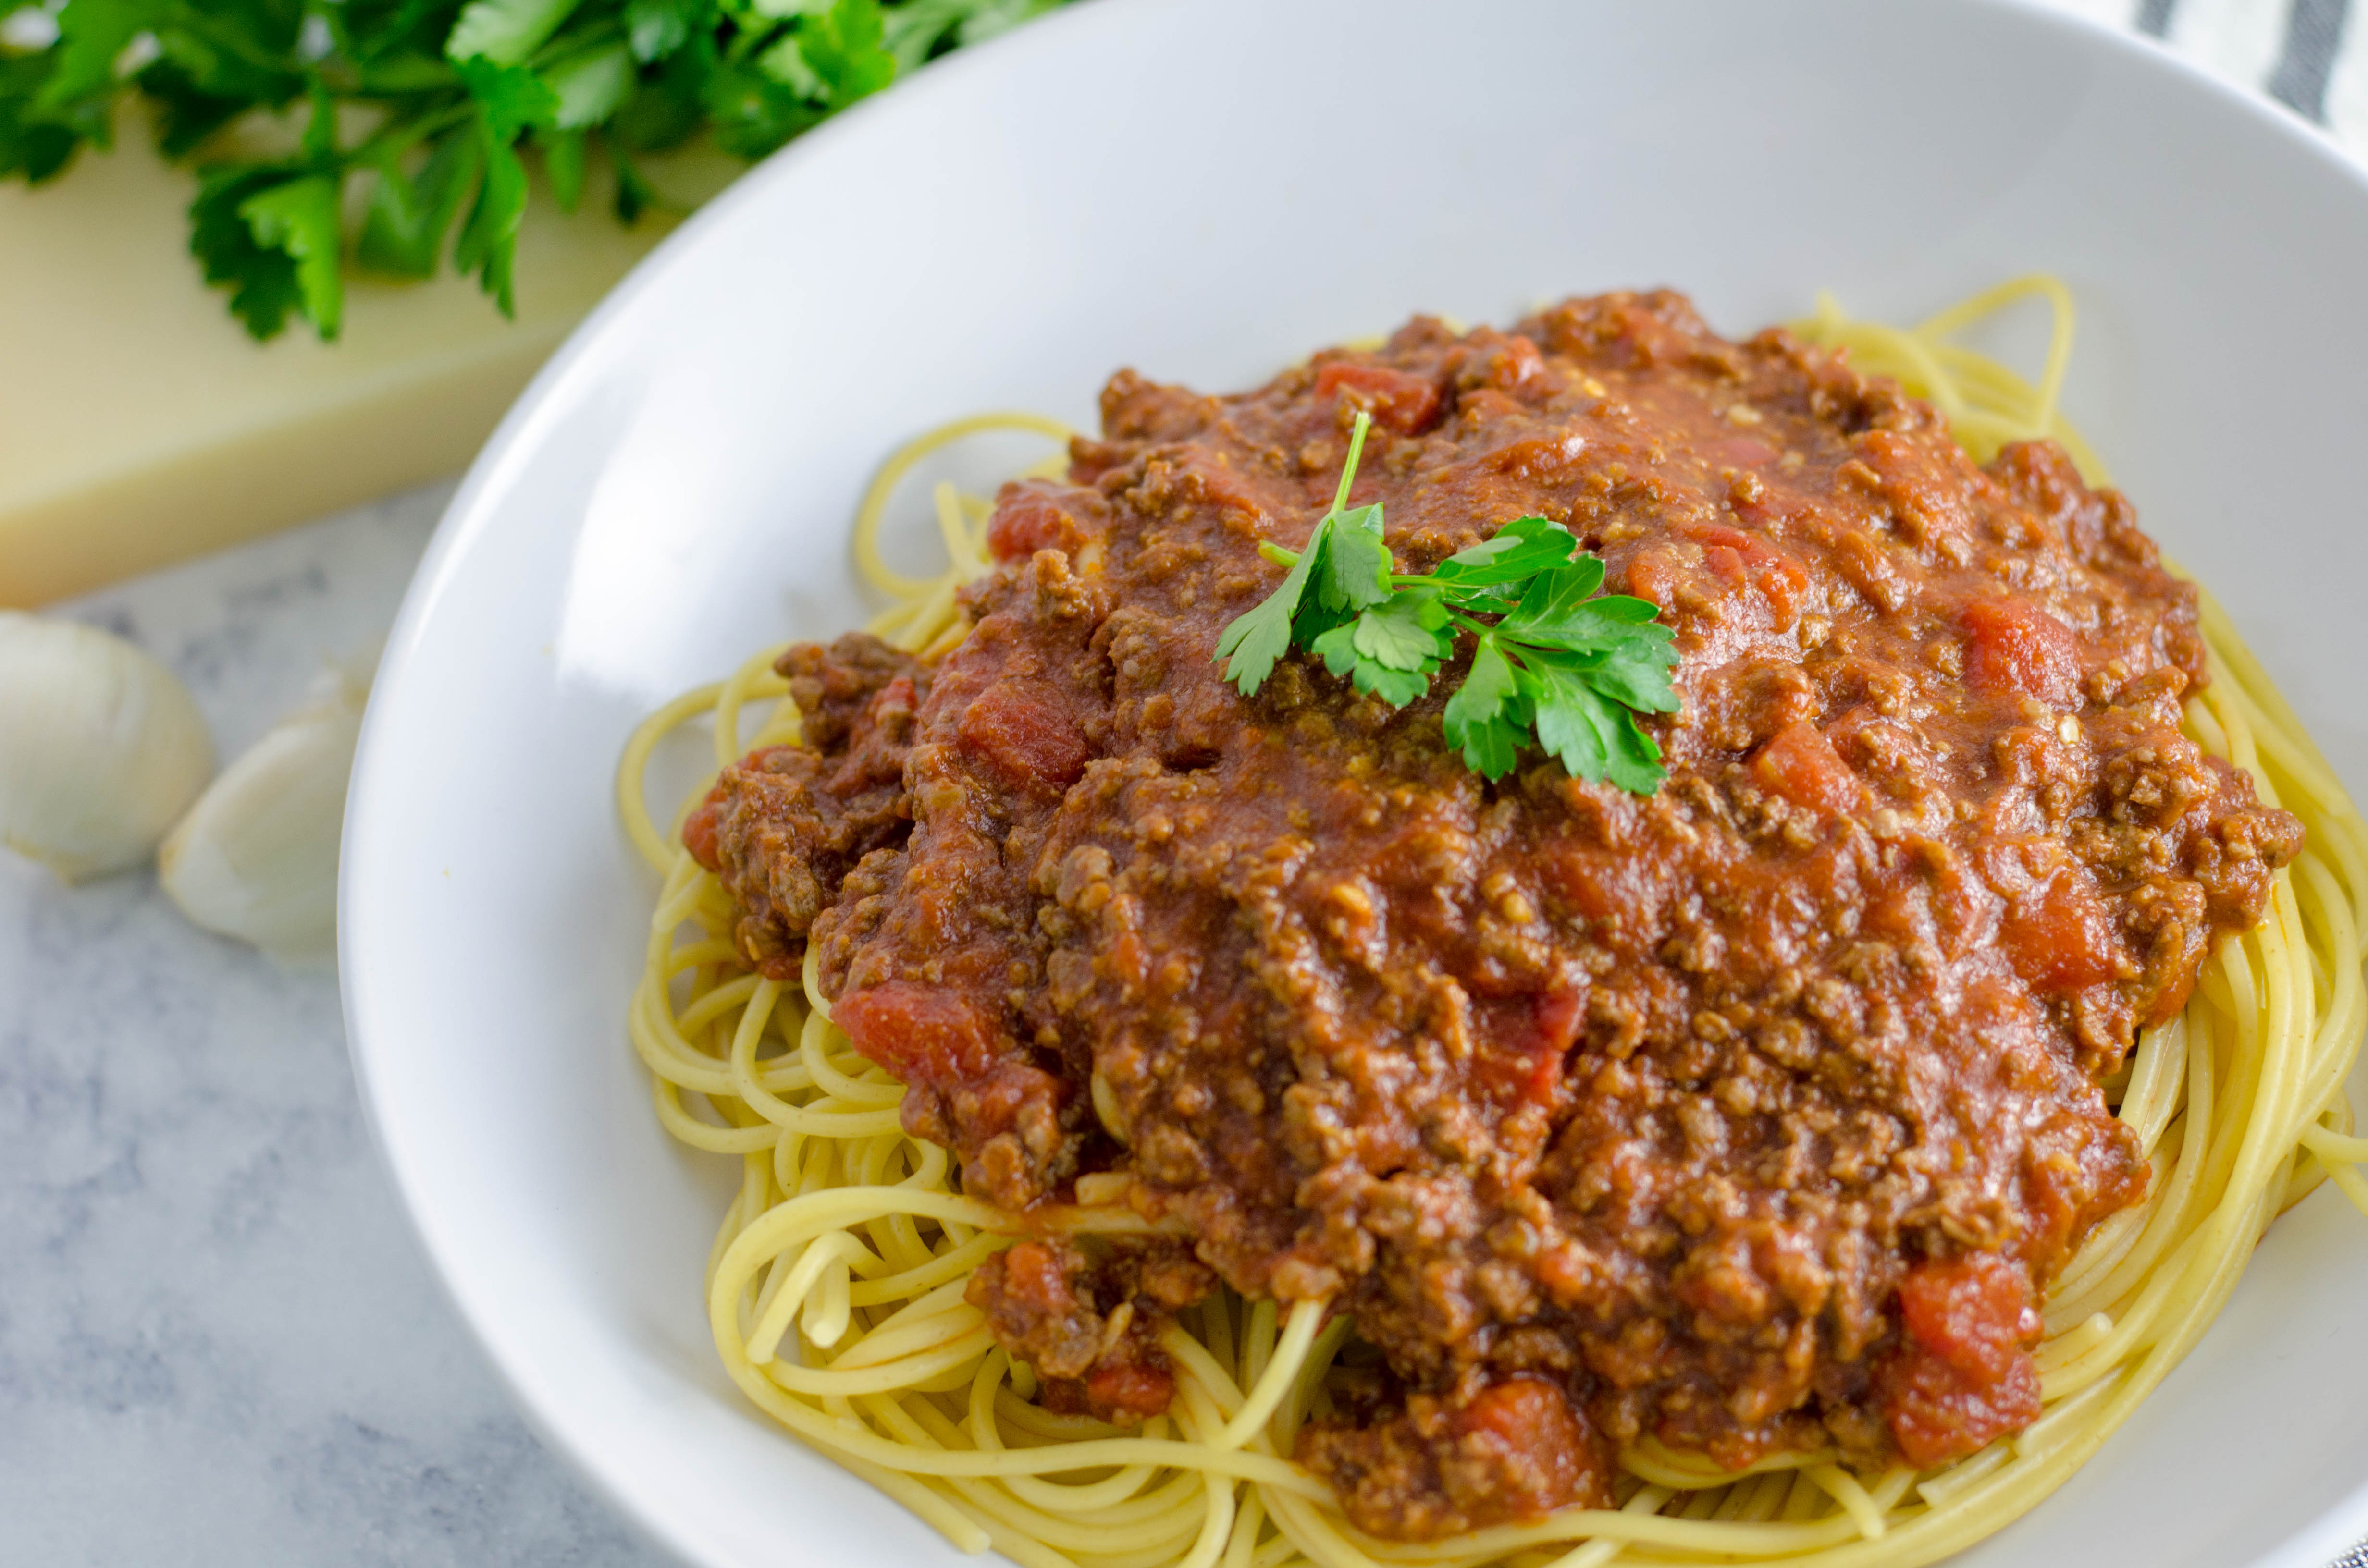 The ultimate comfort food. Simple, delicious and super easy to make, this spaghetti with meat sauce will be sure to impress at dinner tonight.